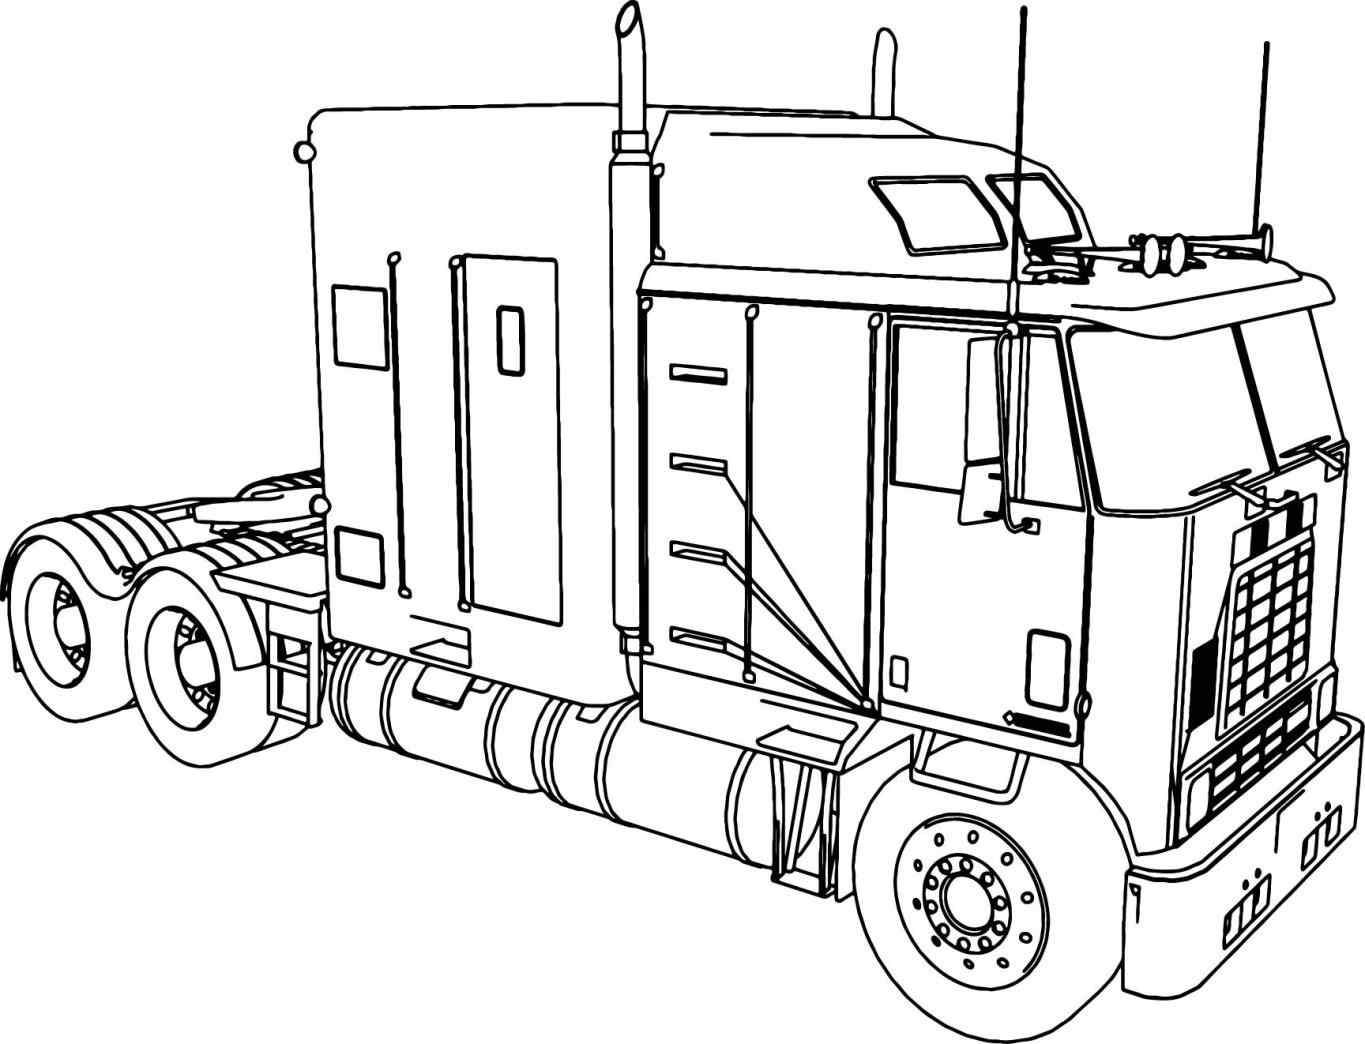 truck colouring in top 10 free printable dump truck coloring pages online in truck colouring